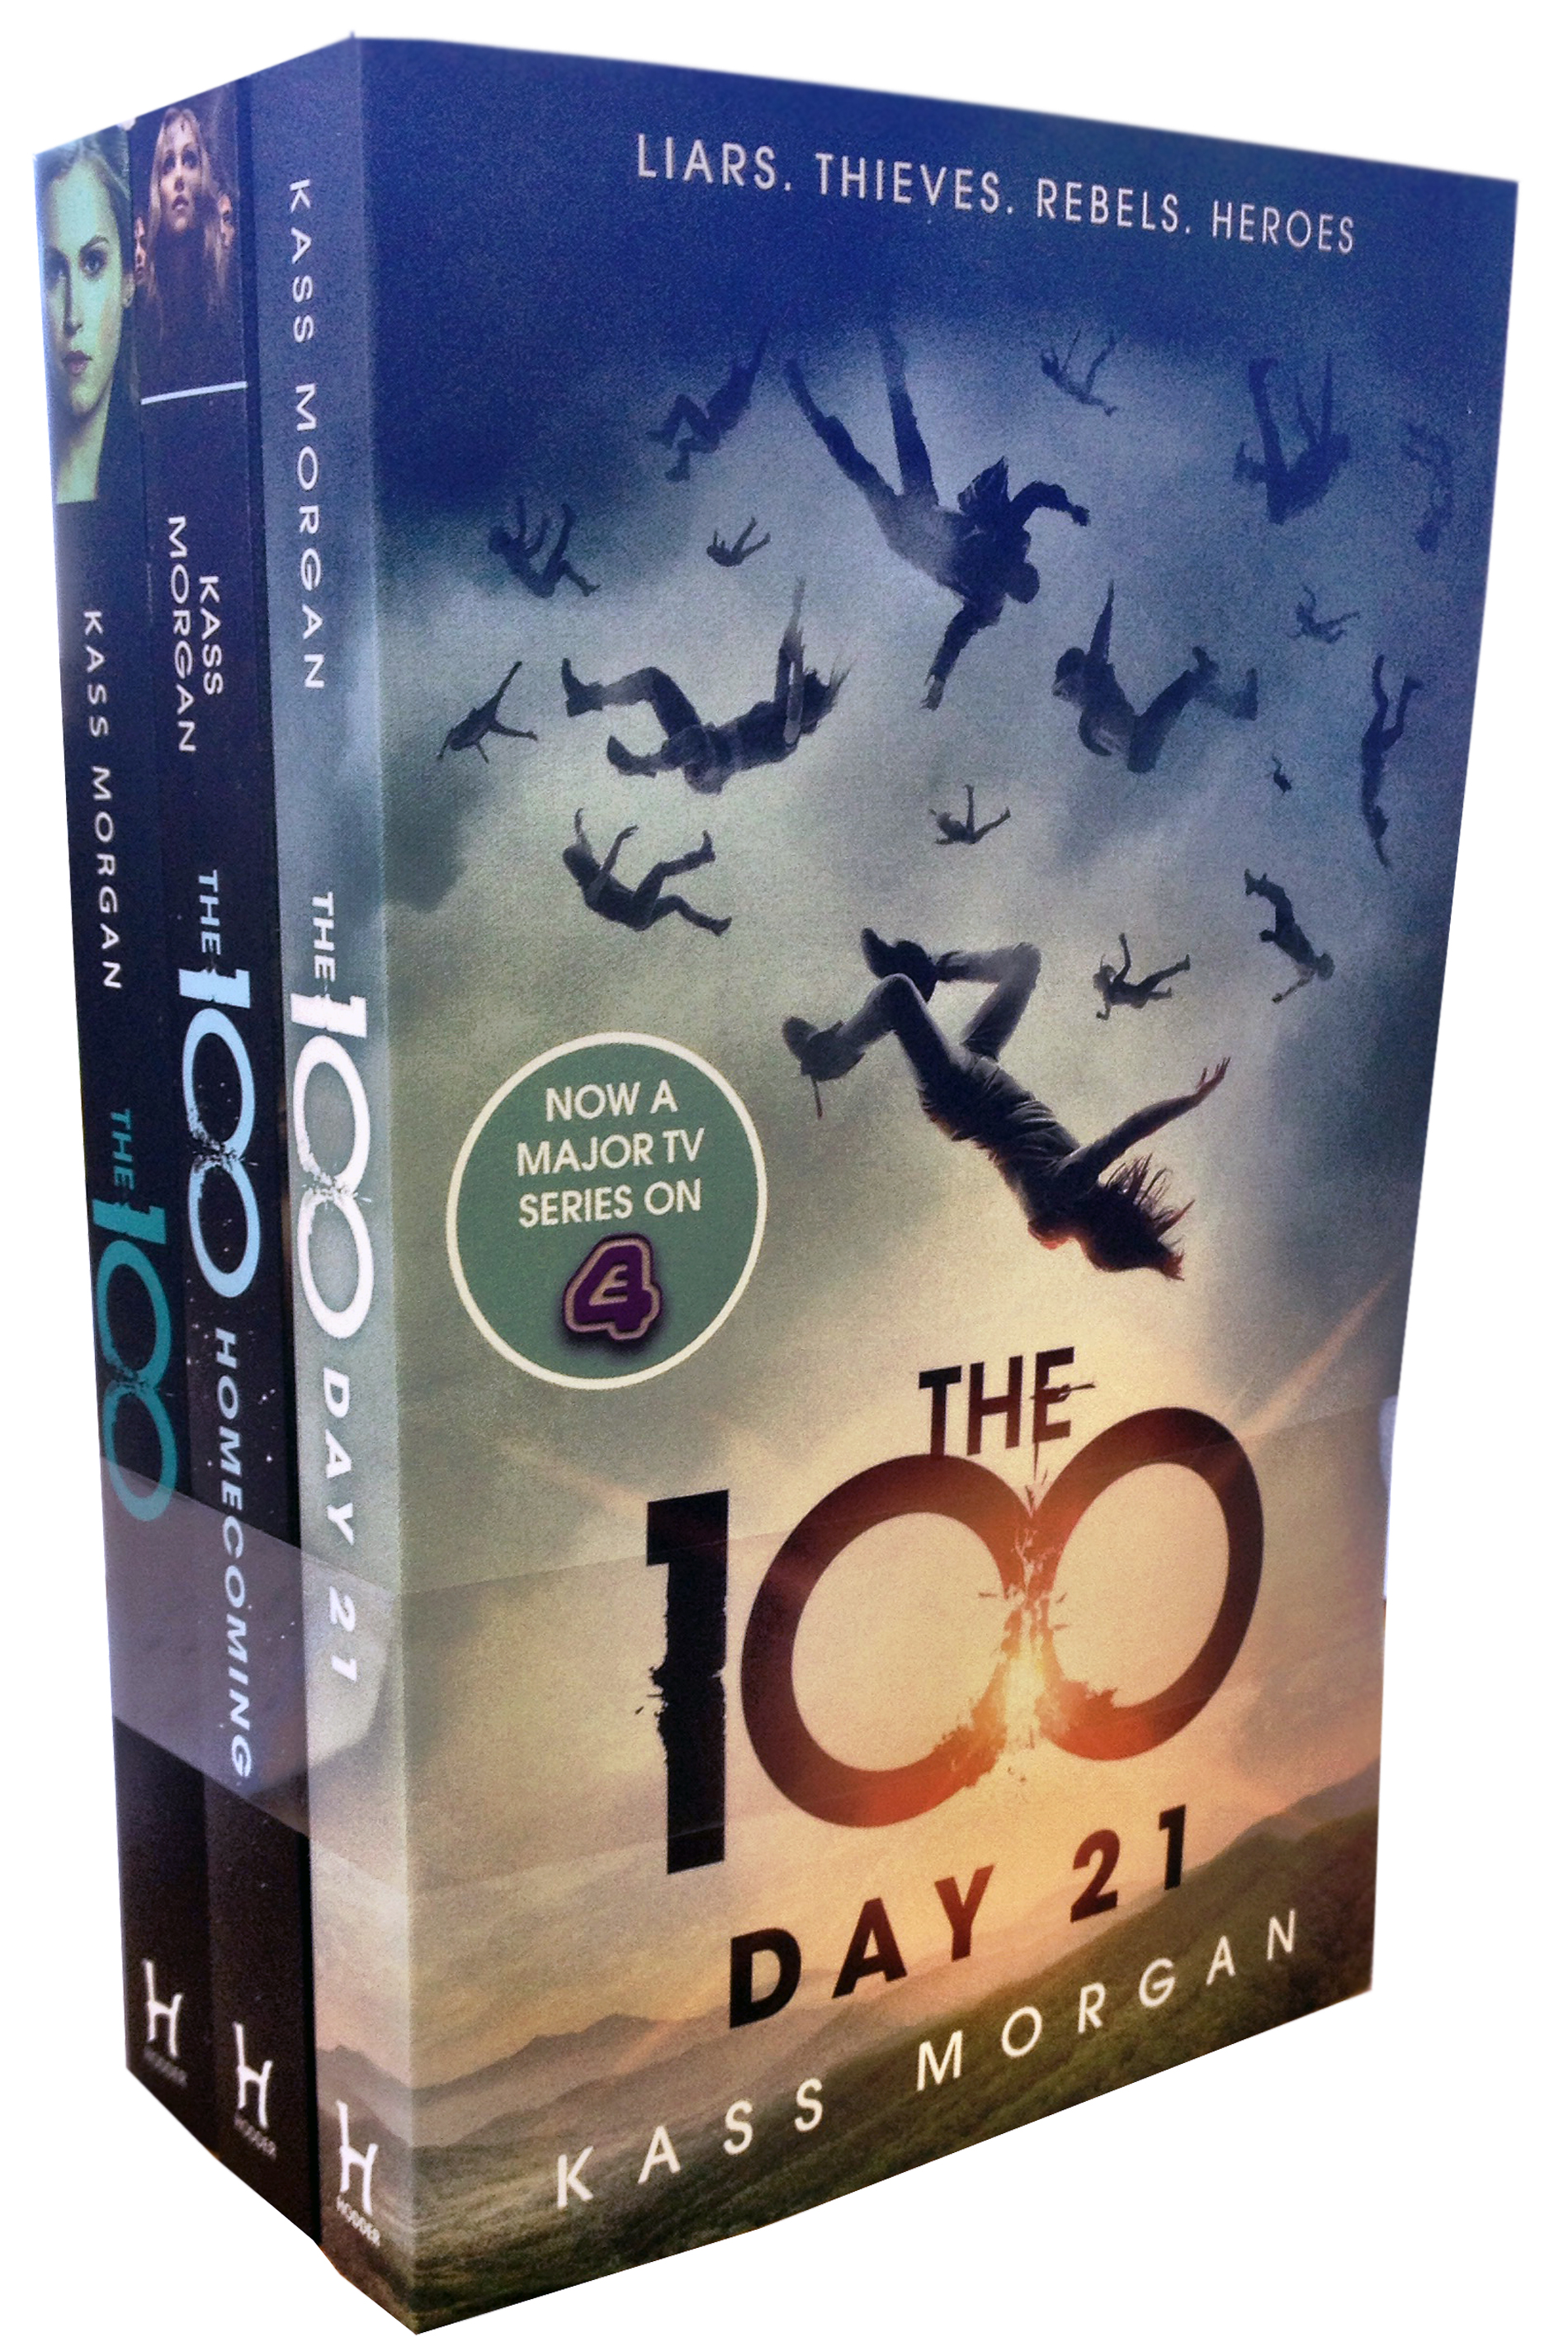 kass morgan the 100 series collection 3 books set the 100 days 21 homecoming ebay. Black Bedroom Furniture Sets. Home Design Ideas